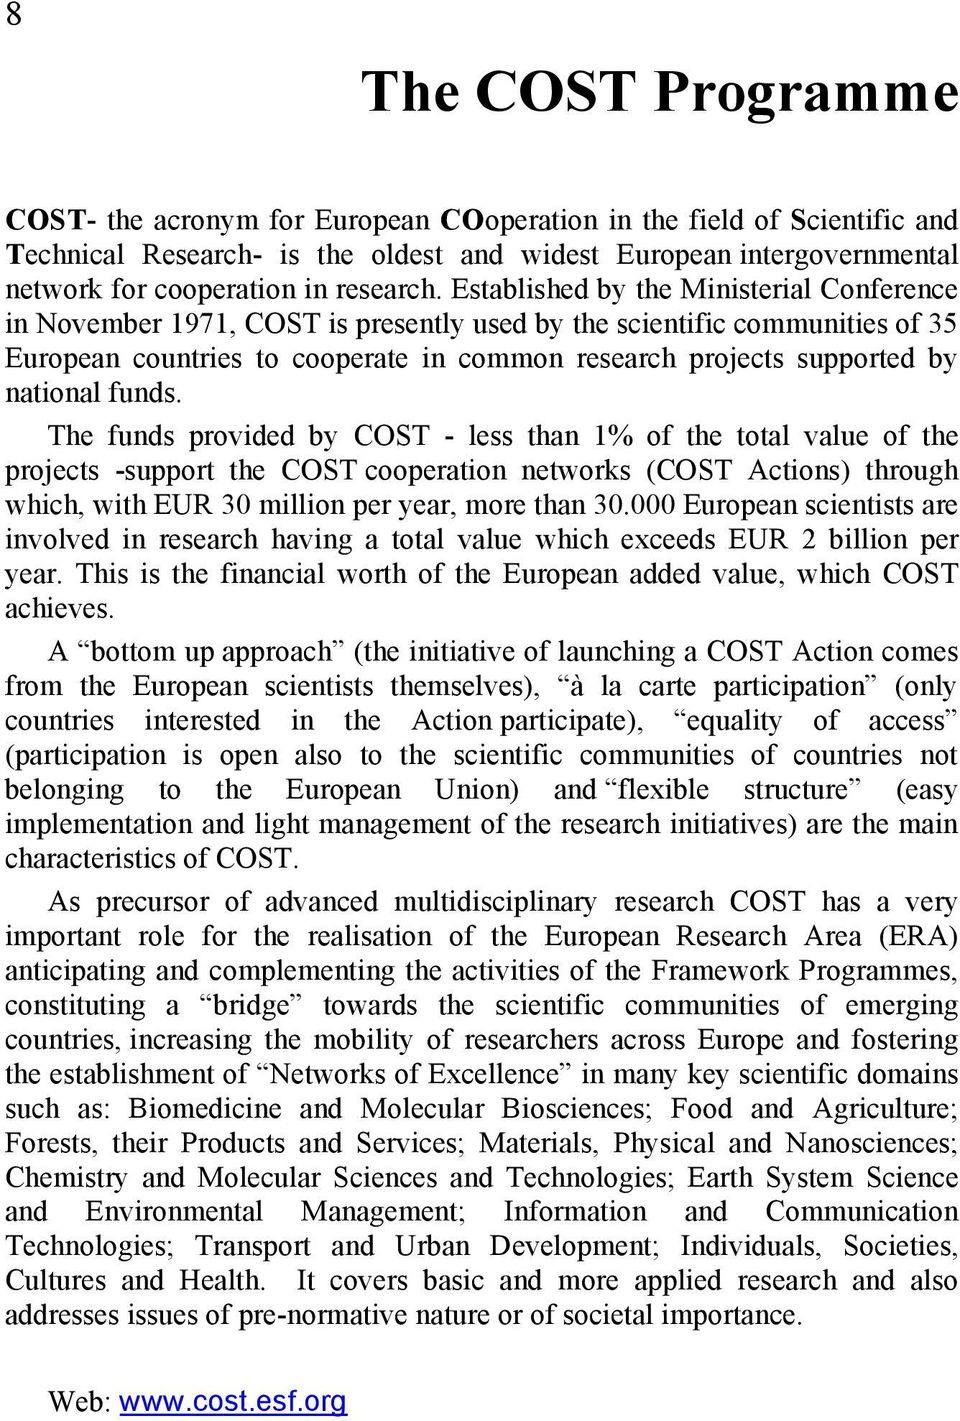 Established by the Ministerial Conference in November 1971, COST is presently used by the scientific communities of 35 European countries to cooperate in common research projects supported by